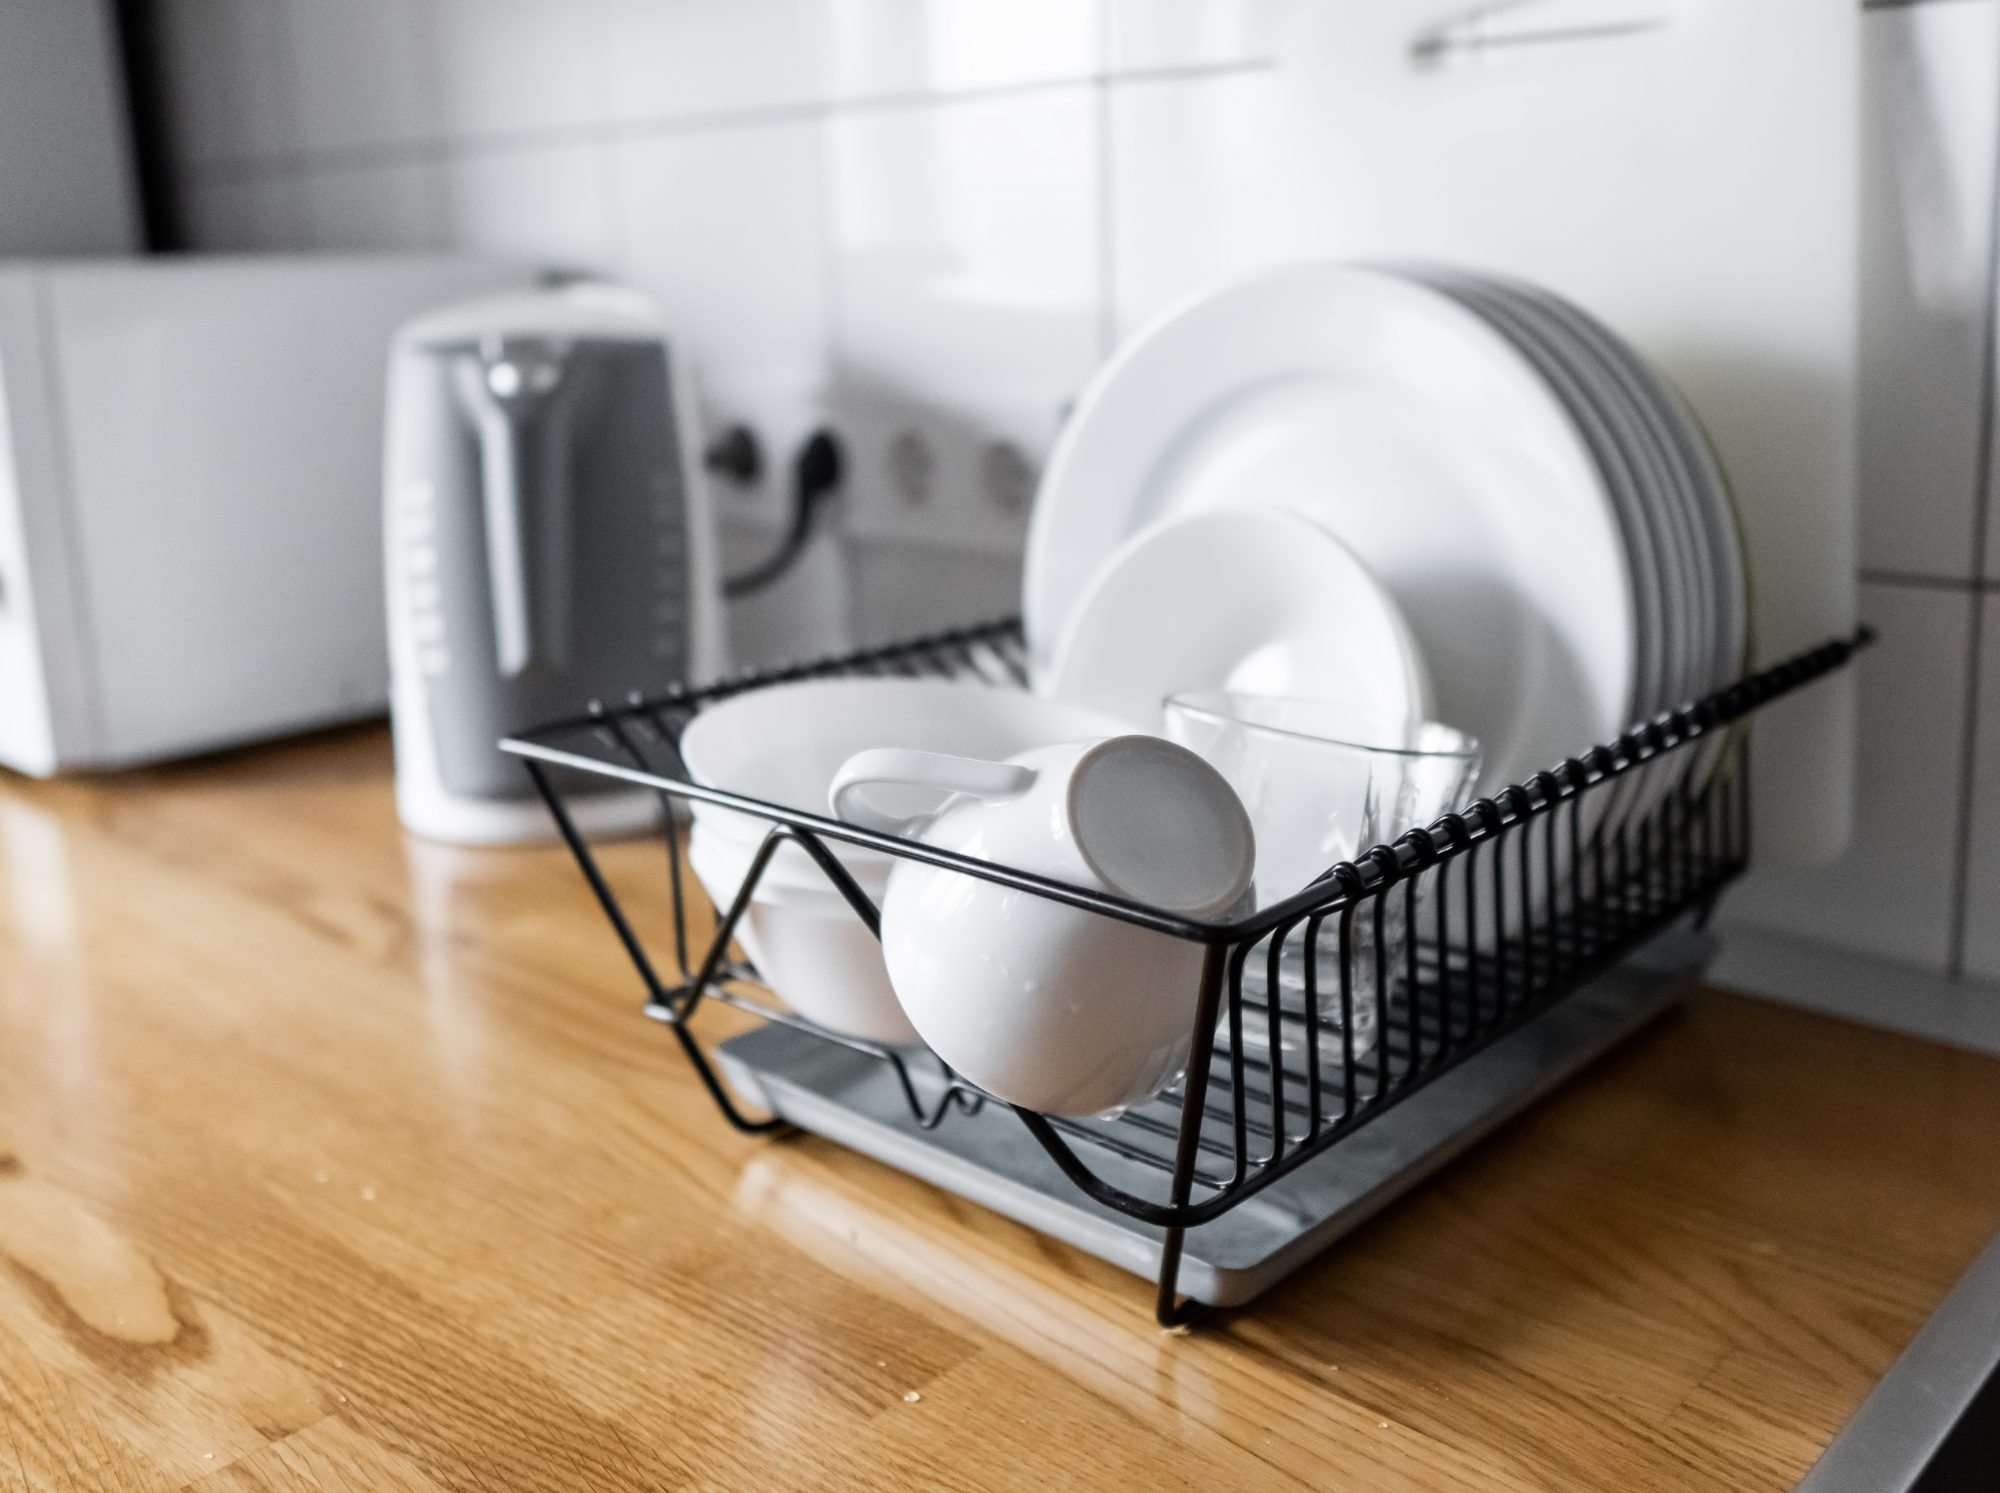 dishes drying on wire rack